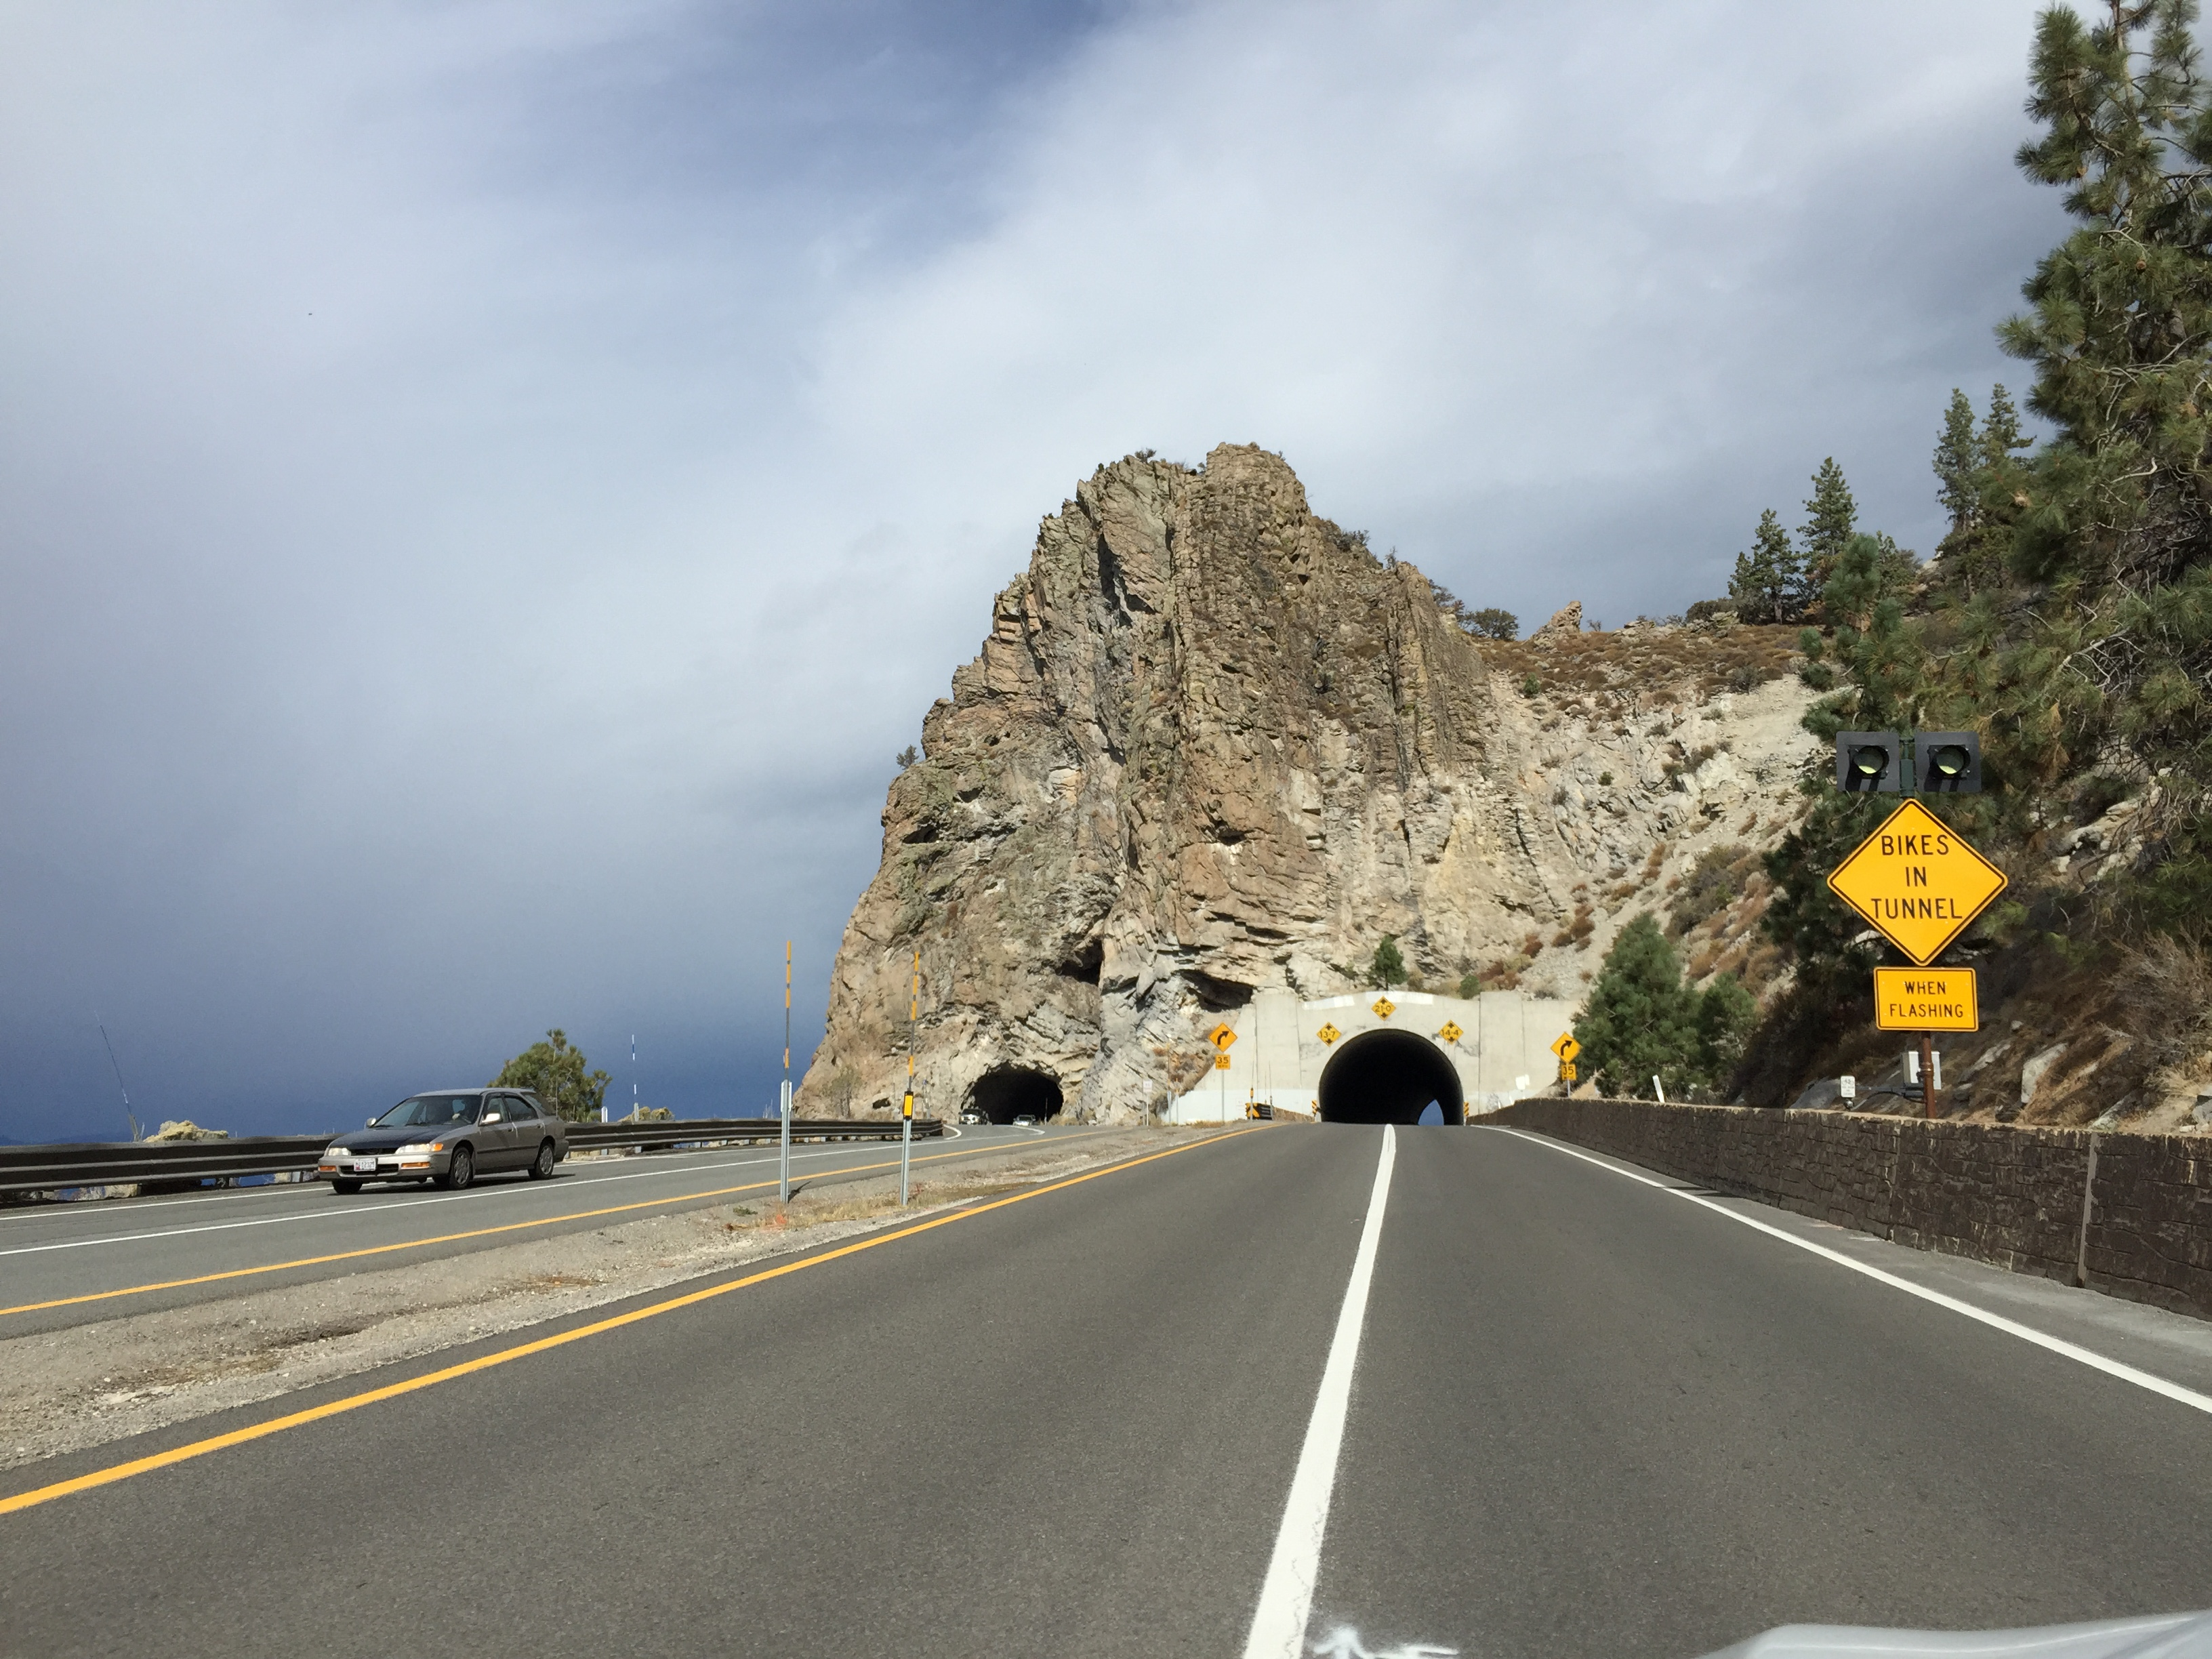 File:2015-11-01 10 57 02 View east along U.S. Route 50 ...